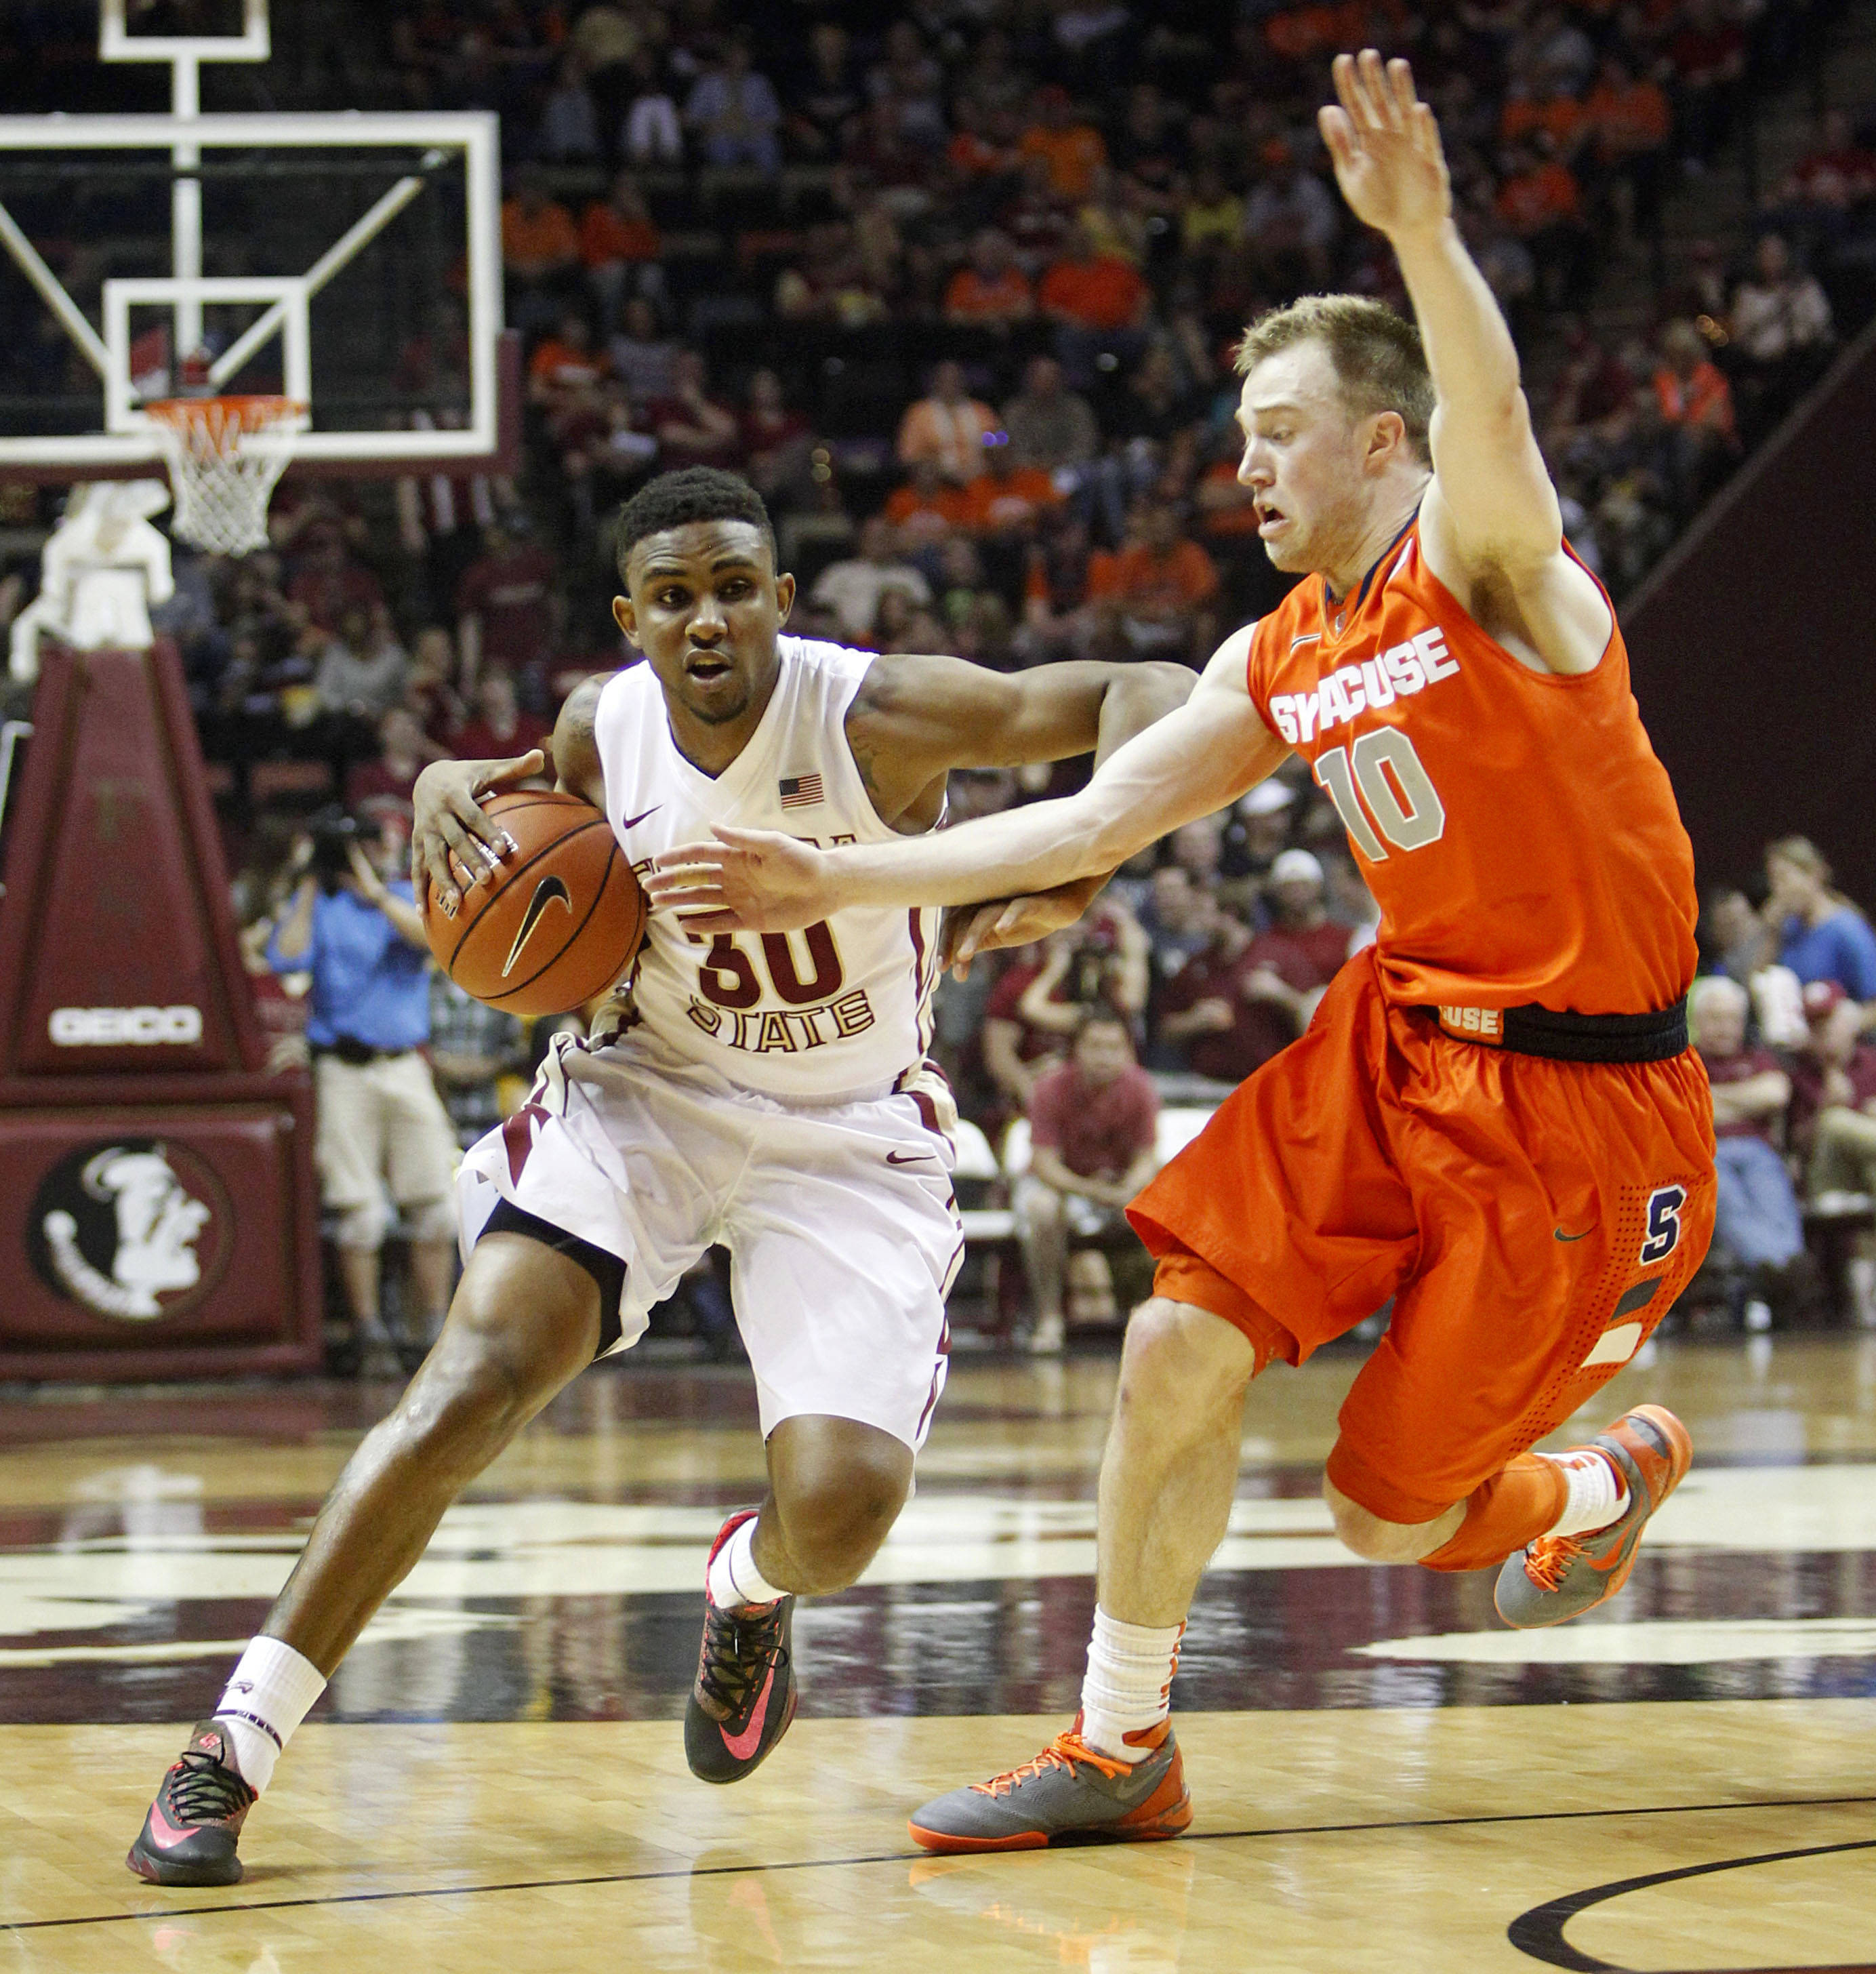 Mar 9, 2014; Tallahassee, FL, USA;  Florida State Seminoles guard Ian Miller (30) drives around Syracuse Orange guard Trevor Cooney (10) during the first half at Donald L. Tucker Center. Mandatory Credit: Matt Stamey-USA TODAY Sports